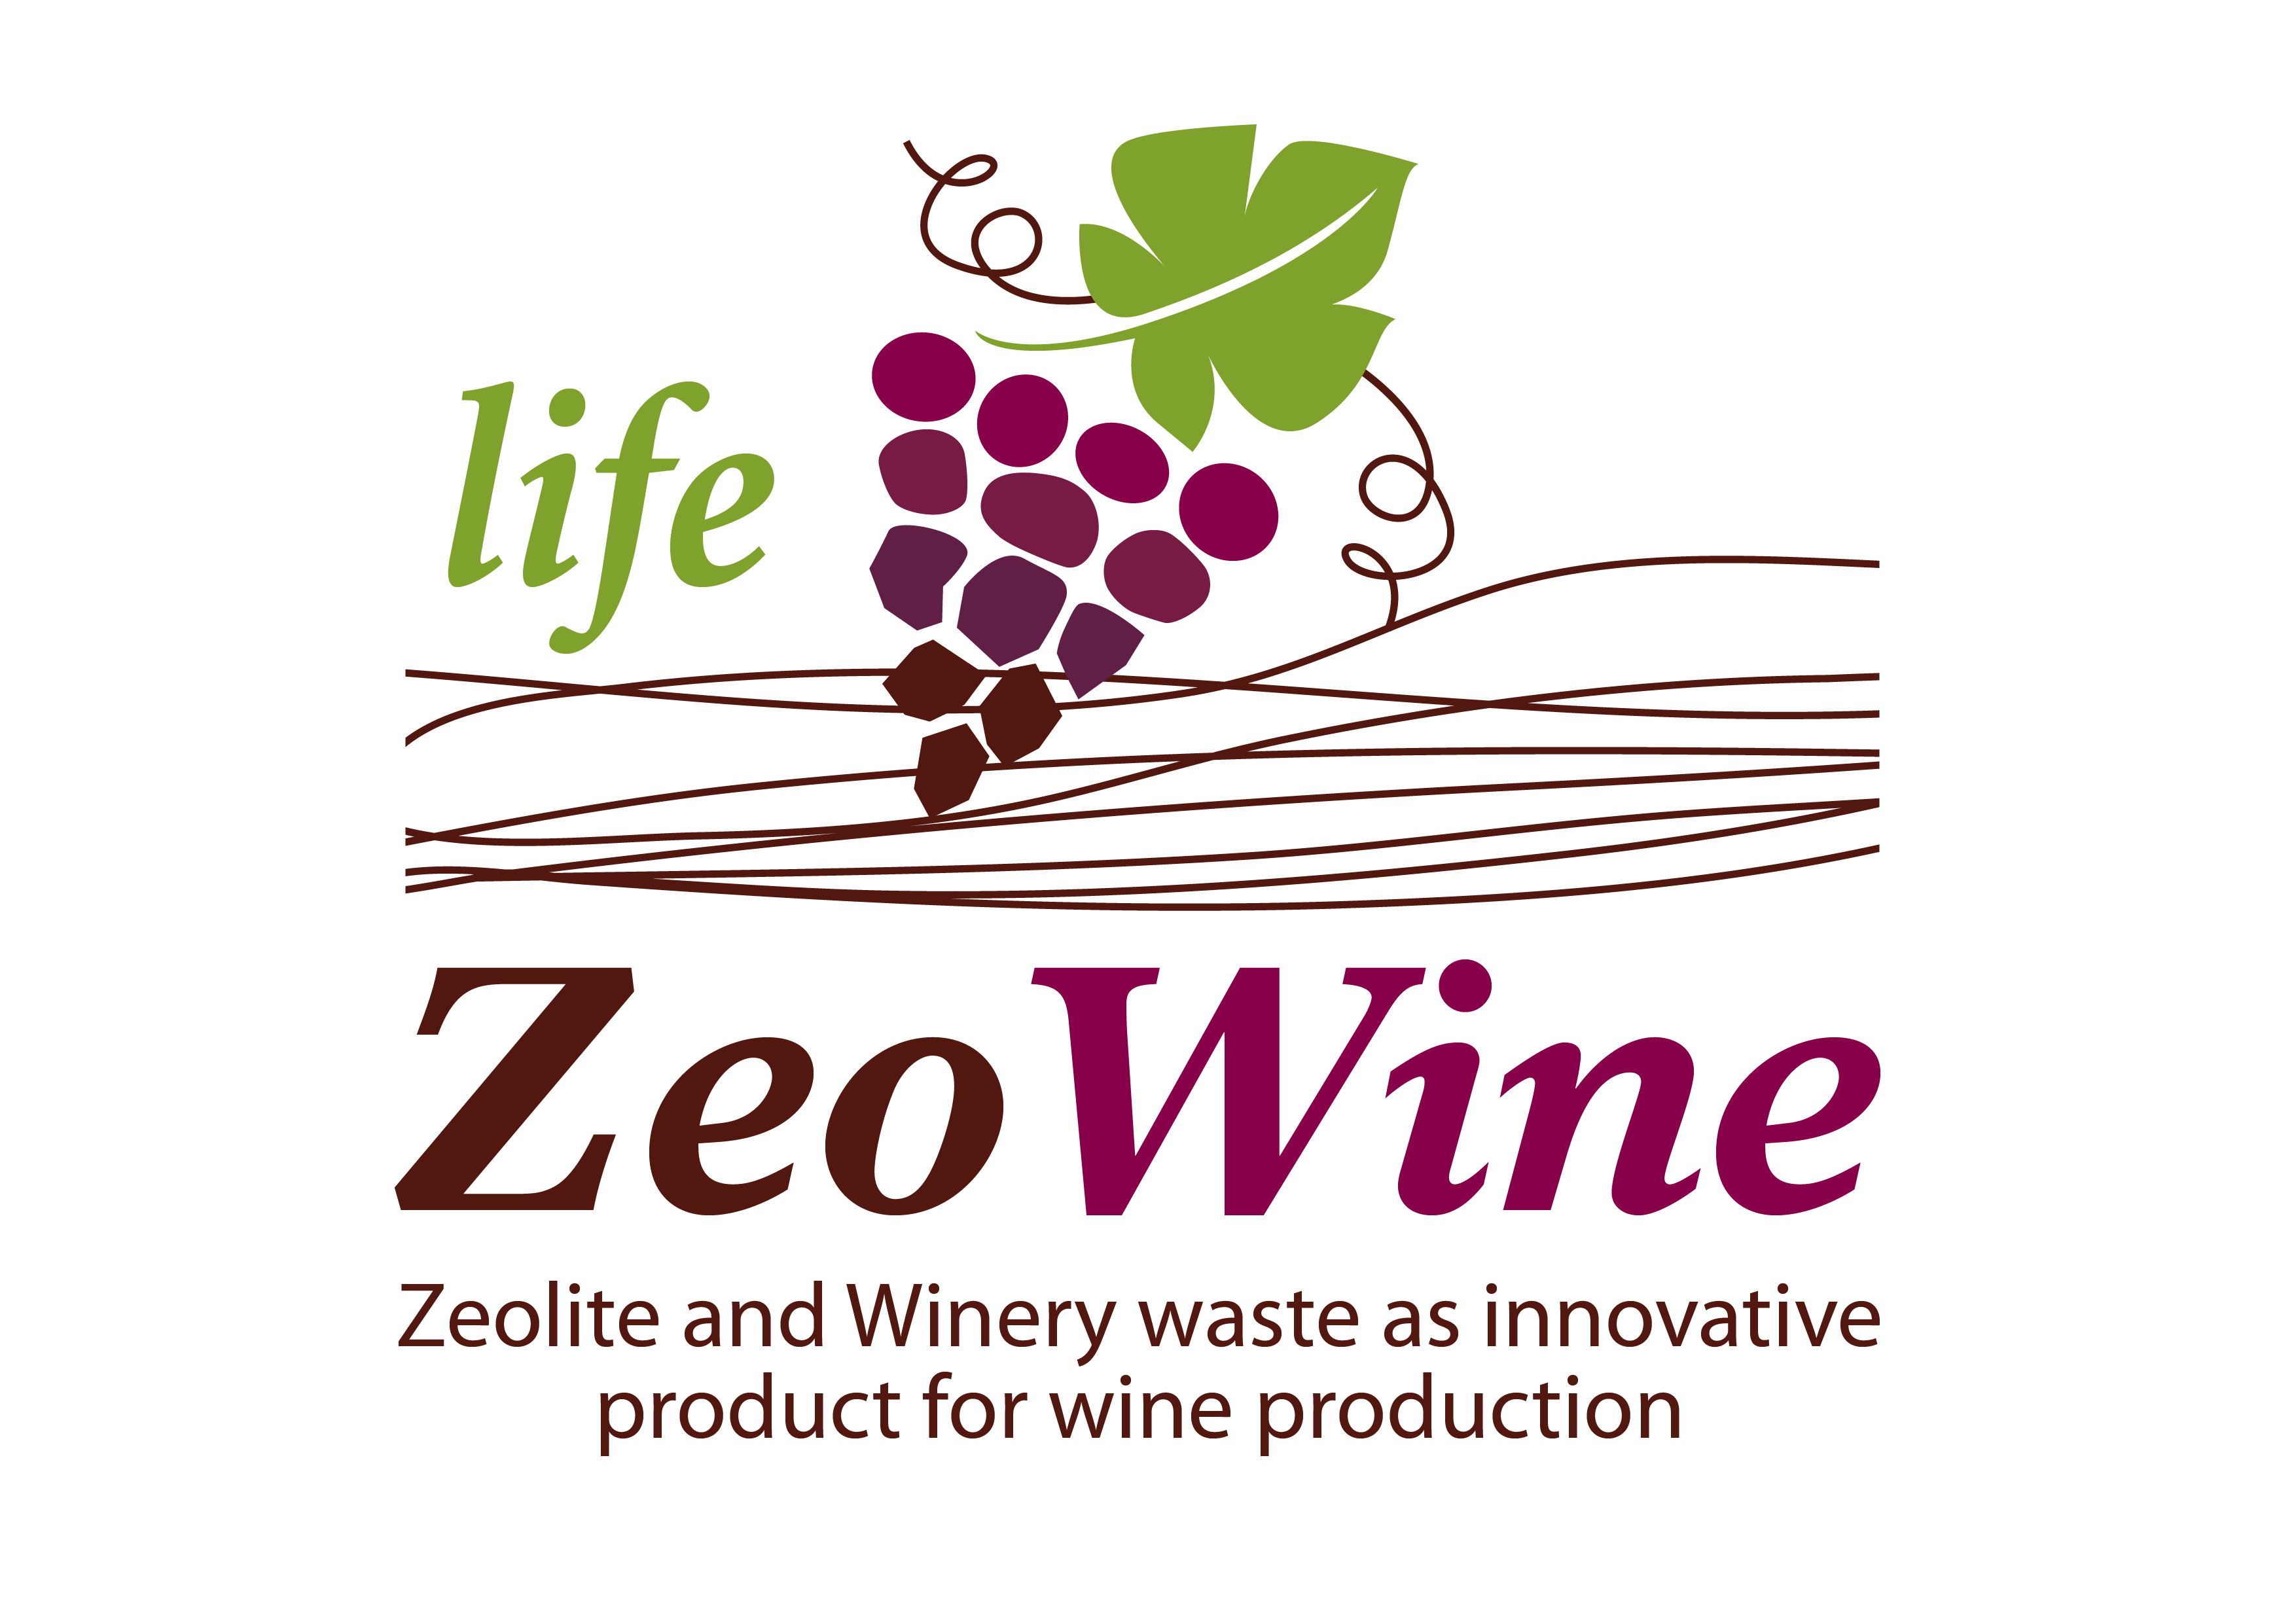 LIFE ZEOWINE – ZEOlite and WINEry waste as innovative